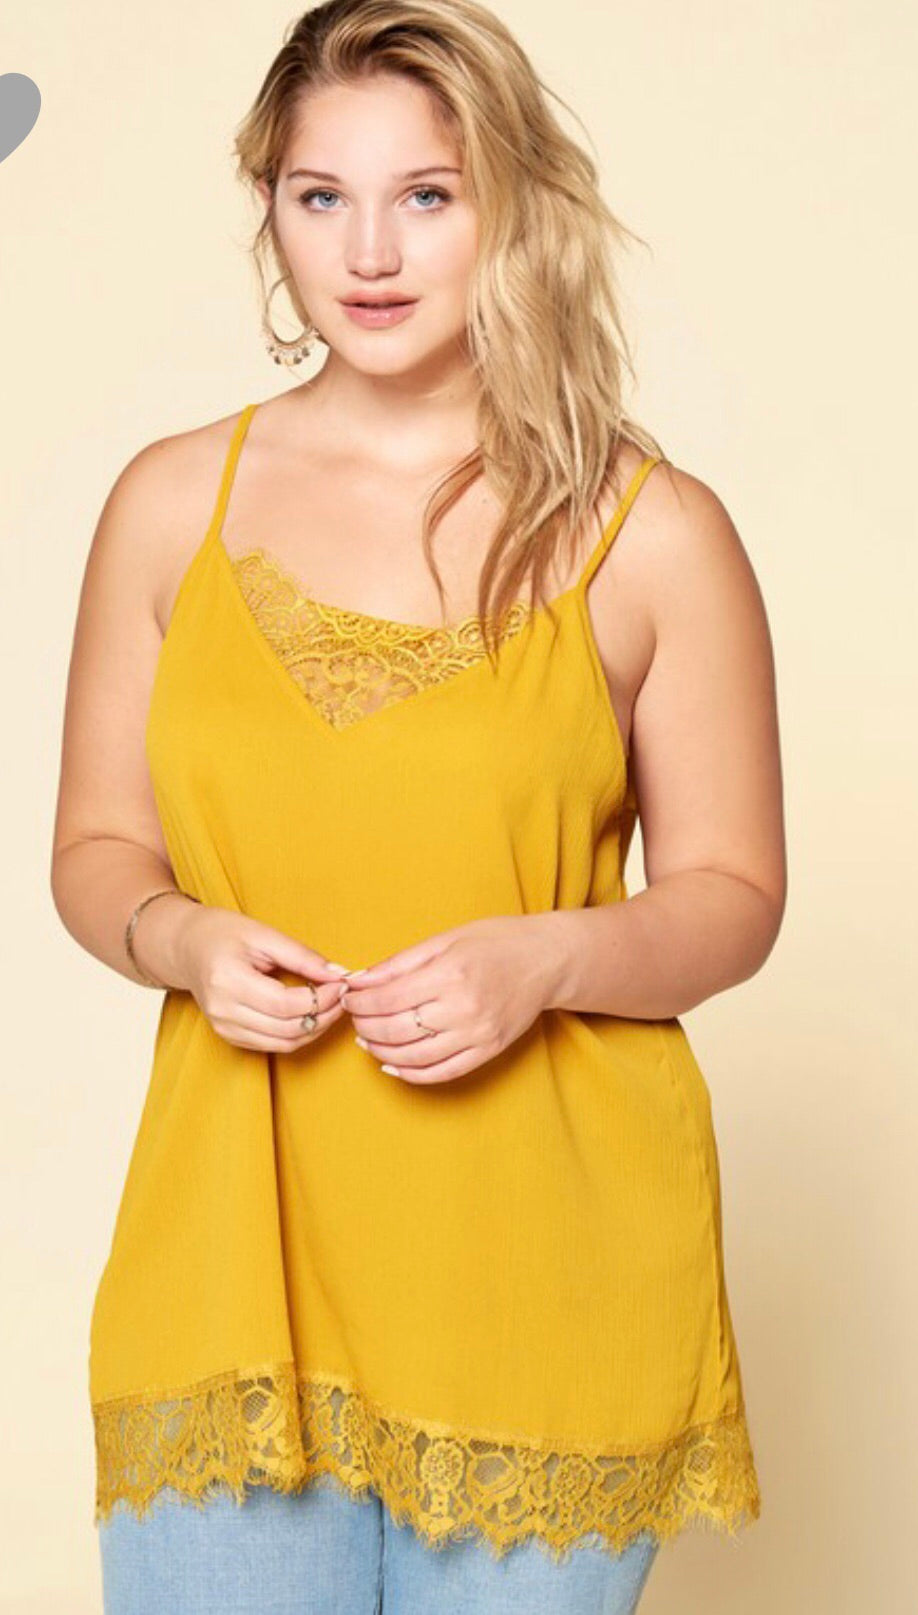 Lace Cami With Adjustable Straps - Mustard